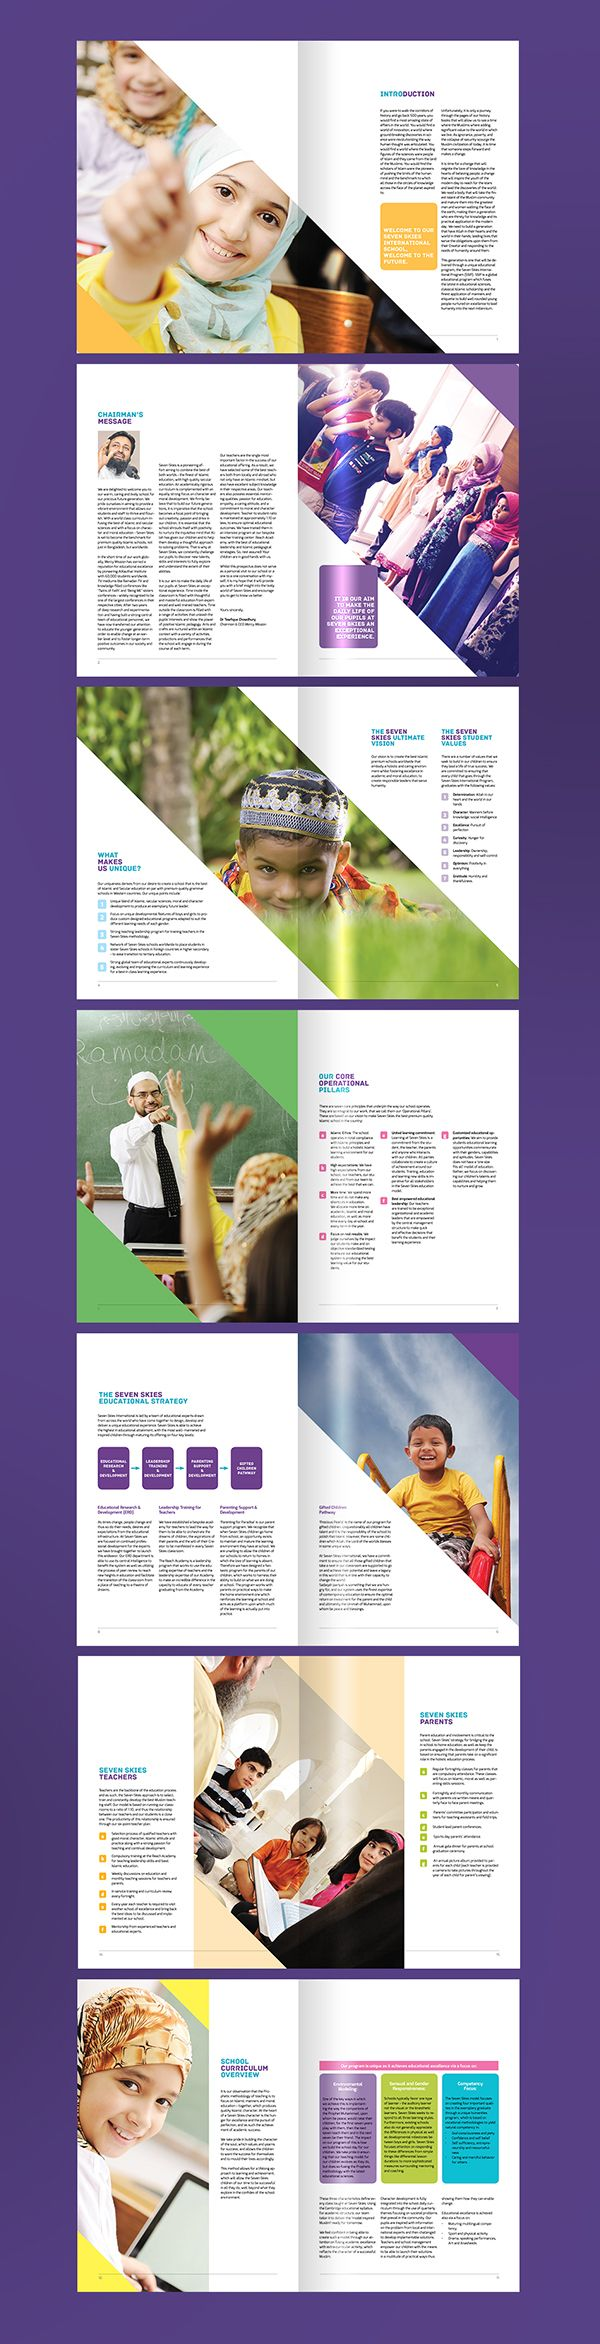 Seven Skies International School (Prospectus) on Behance